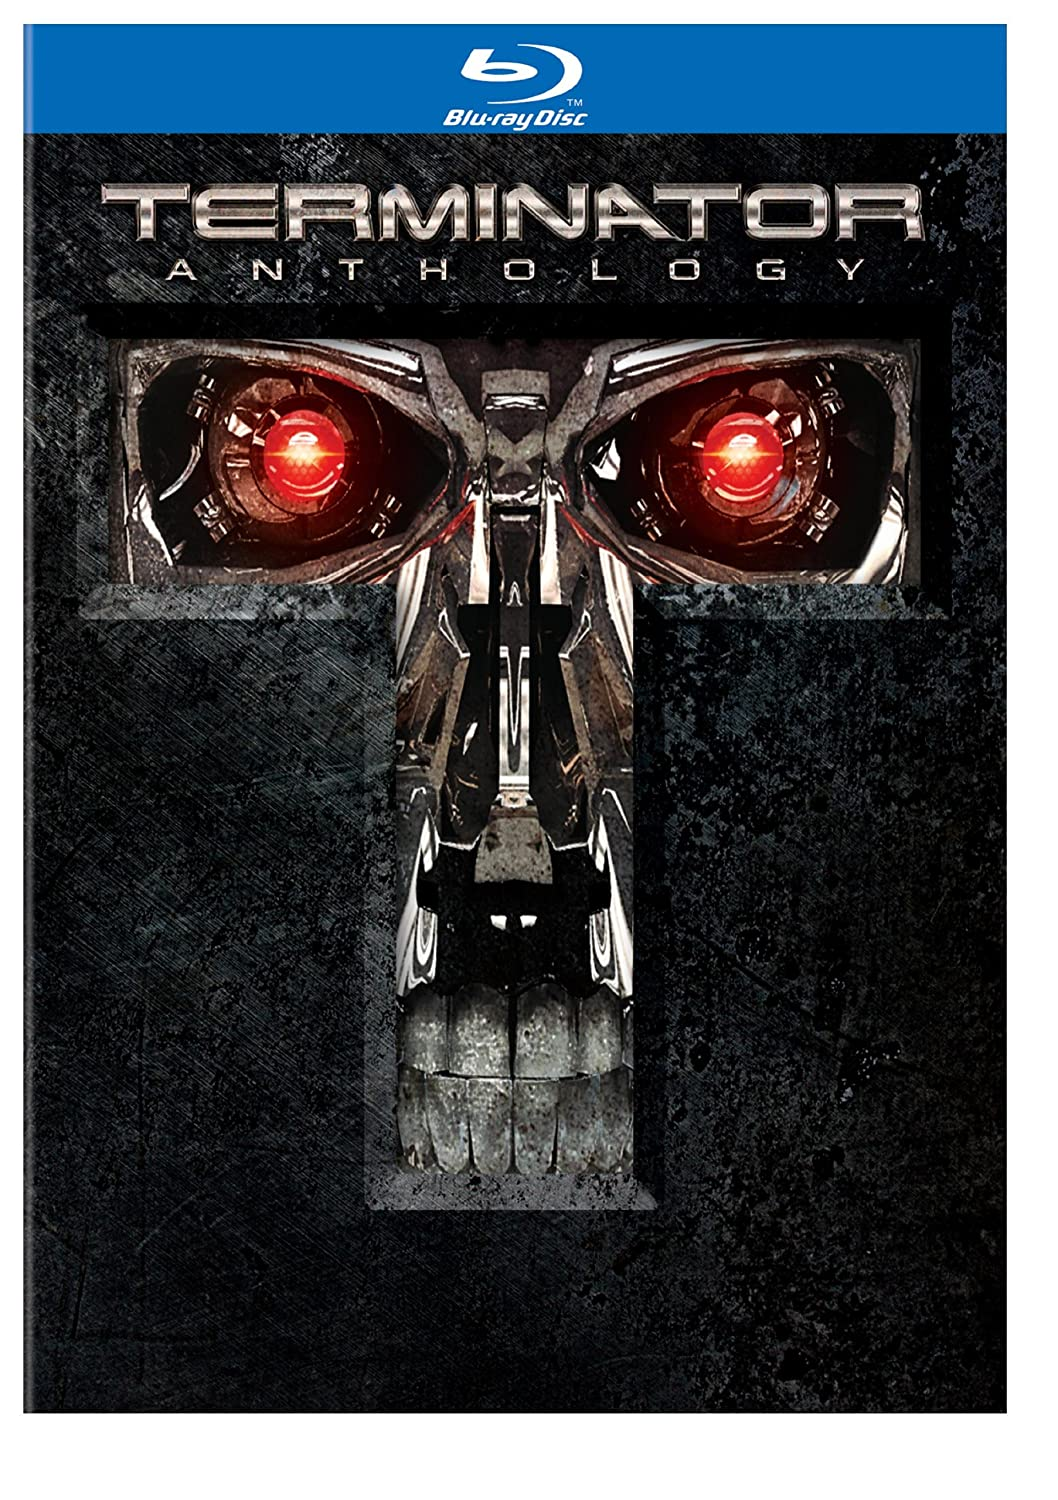 Terminator Anthology (1-4) [Blu-ray]